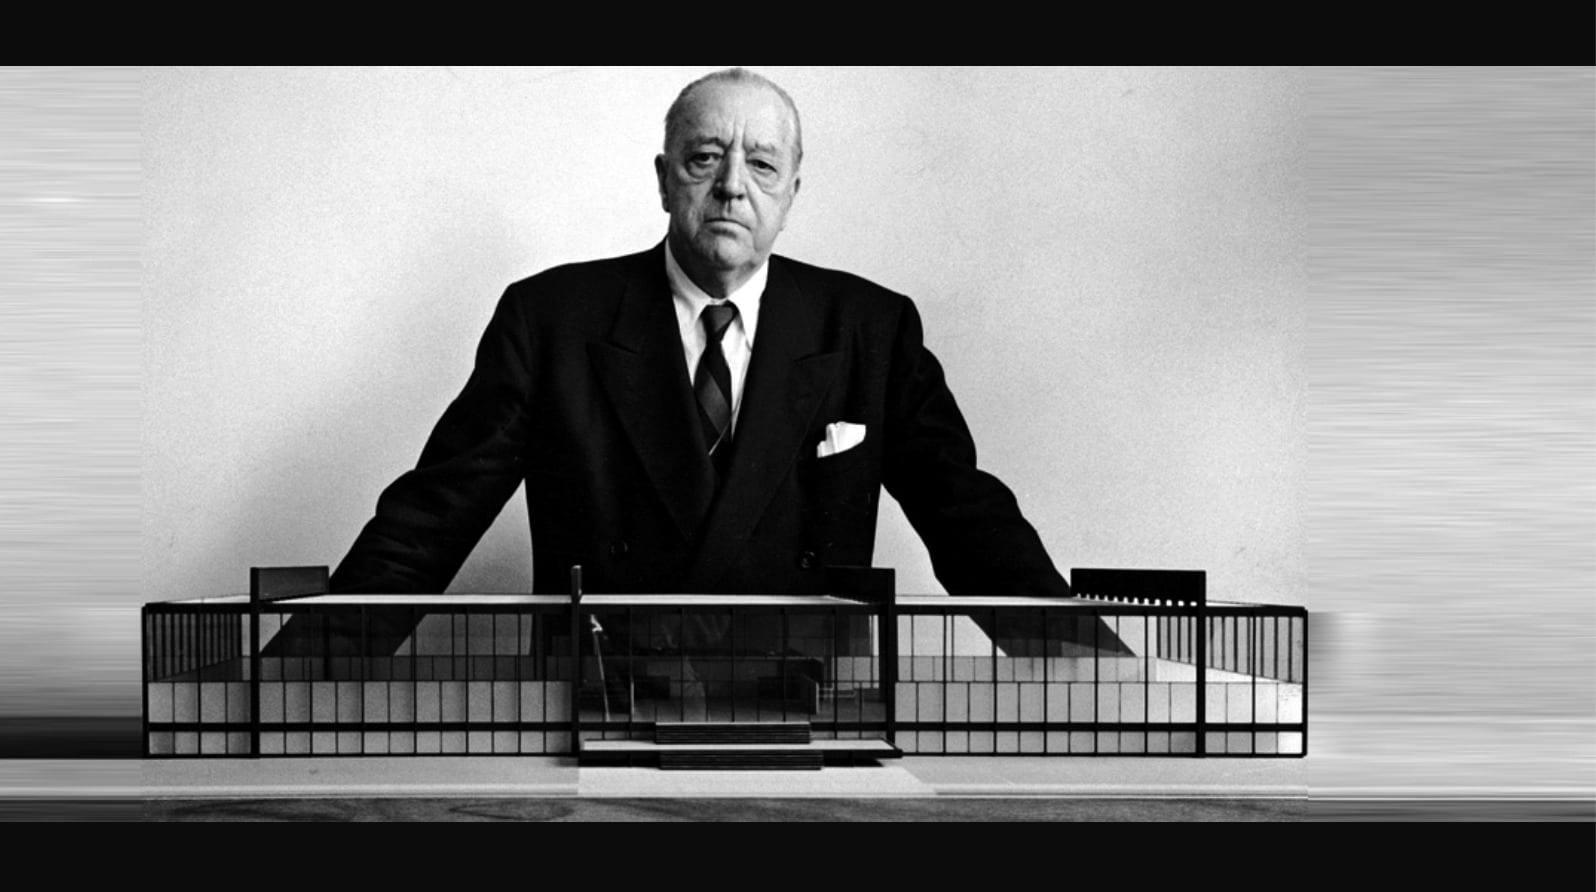 25 Famous quotes by famous architects - Sheet3